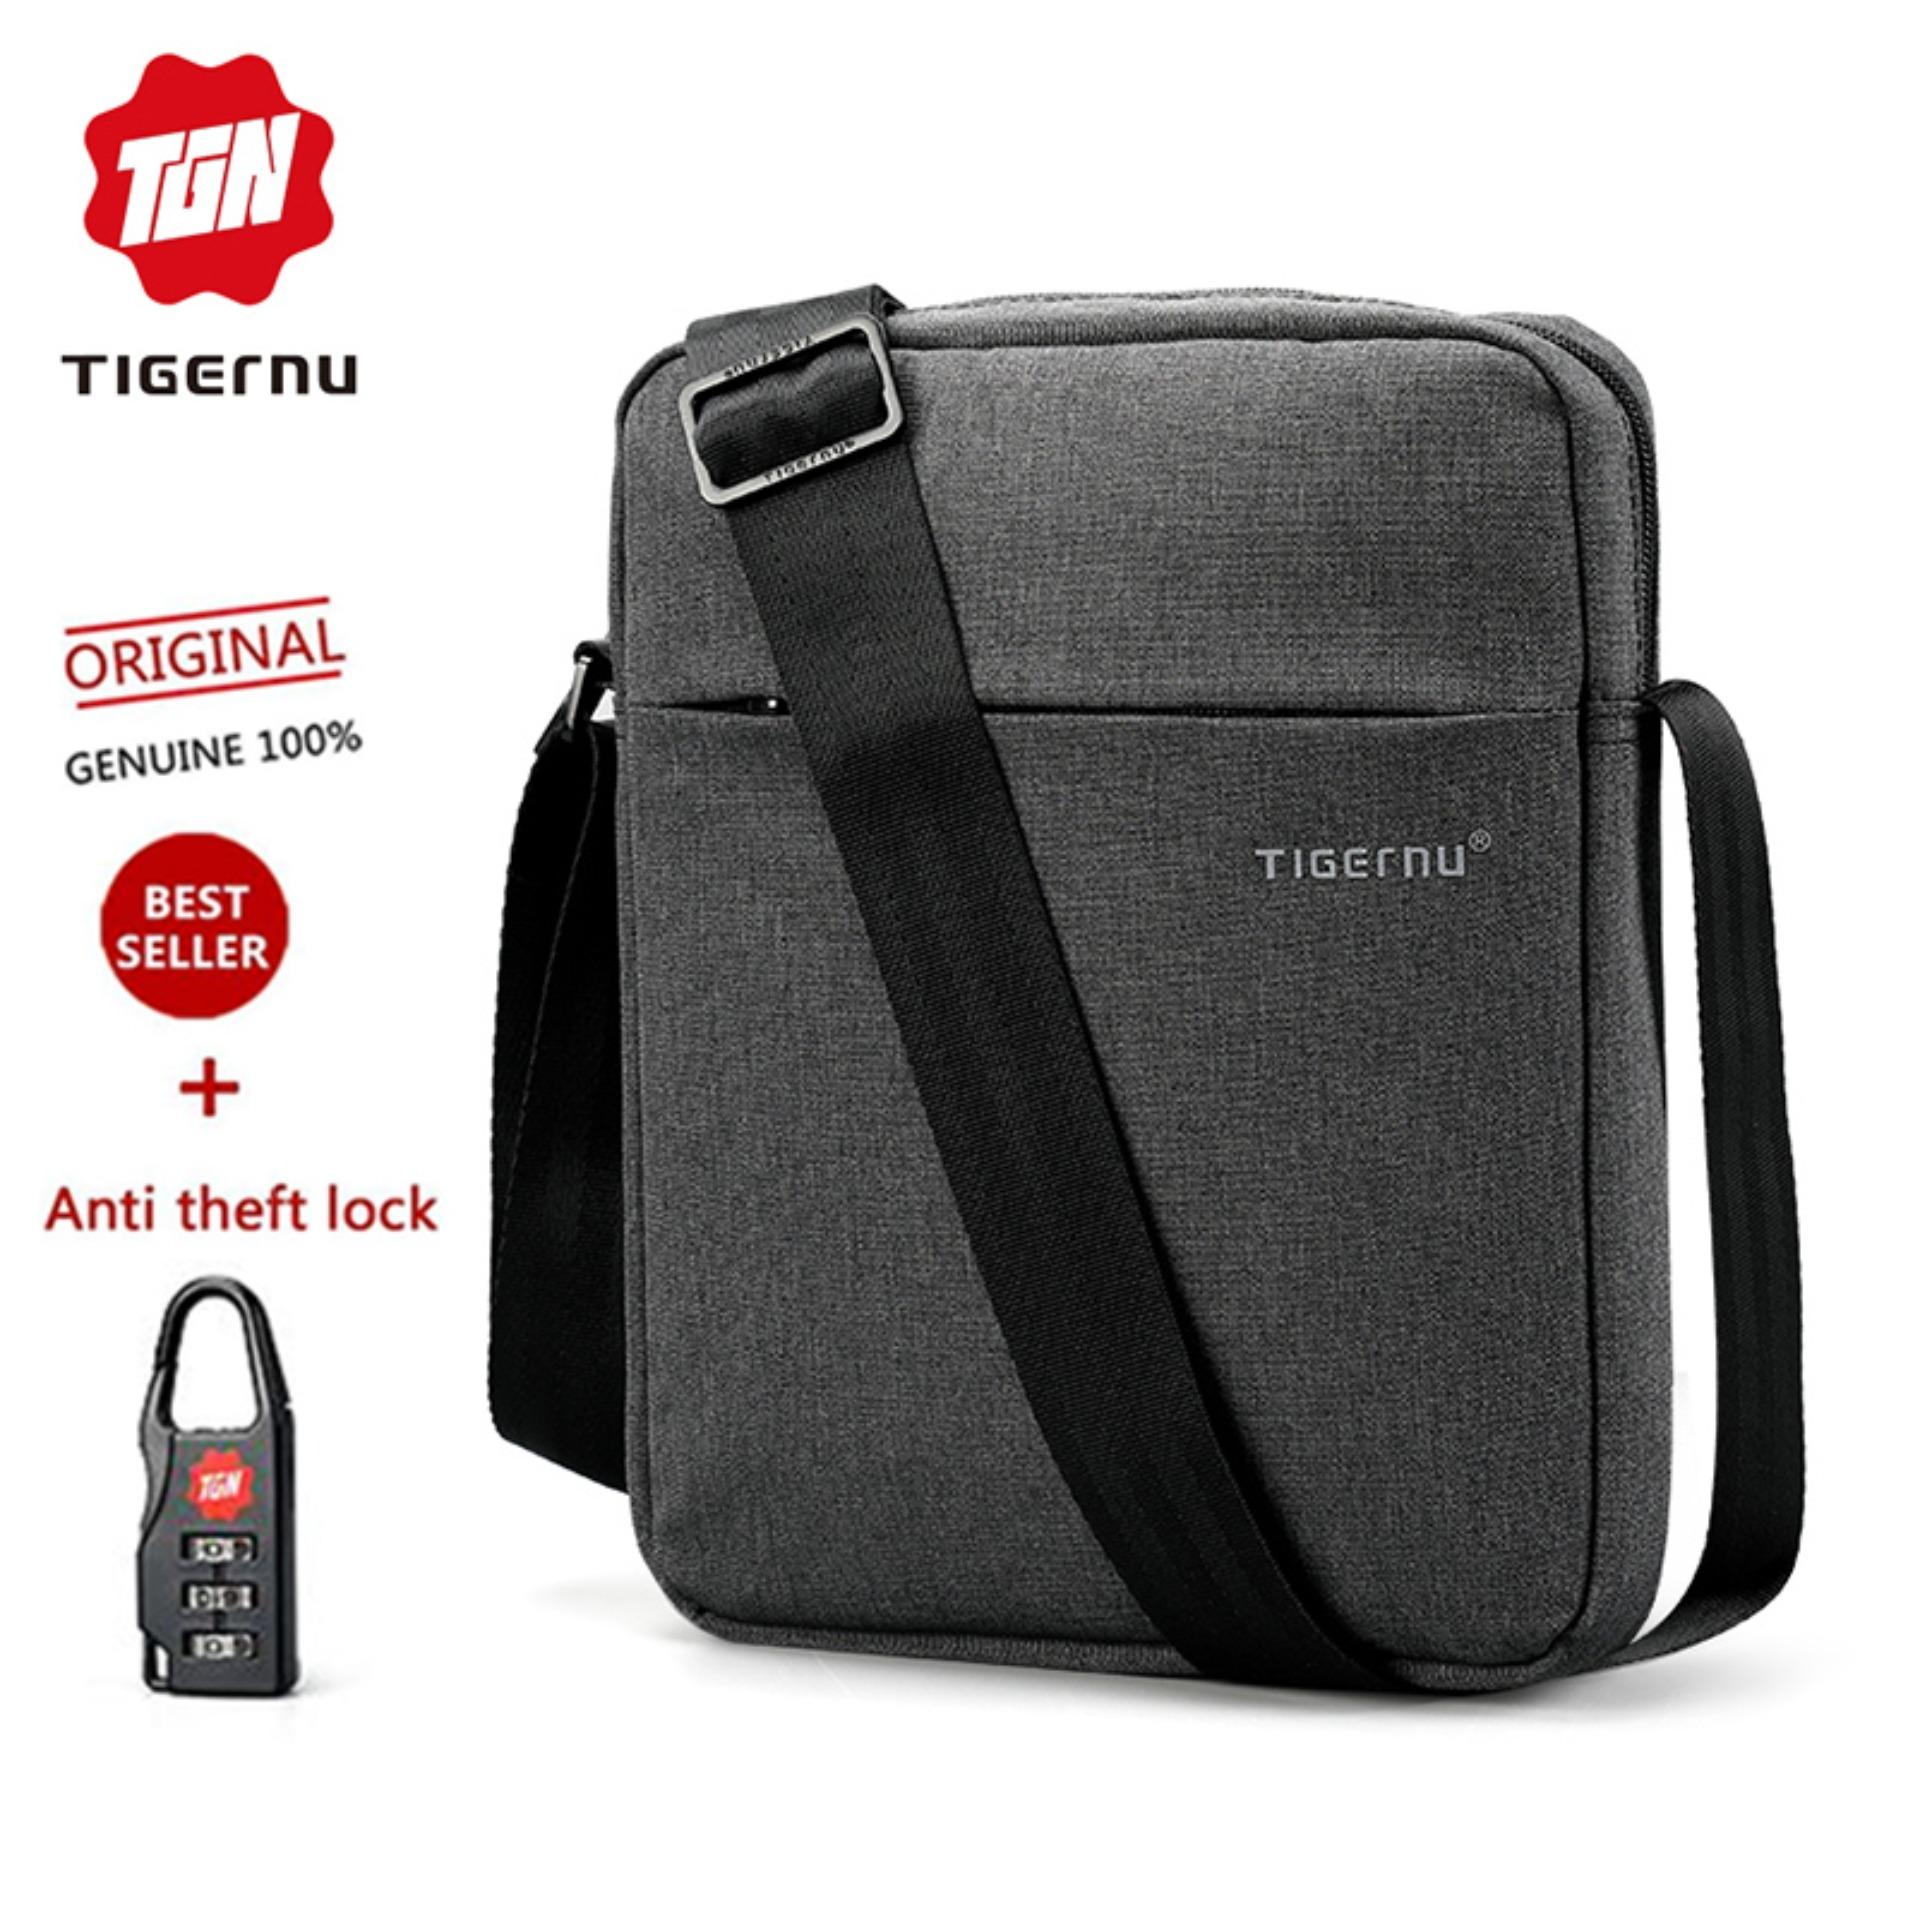 Tigernu Hot selling Water-resistant Scratch proof Messenger Bag Sling bag  for Men Travelling bag d6fb8a2b31126